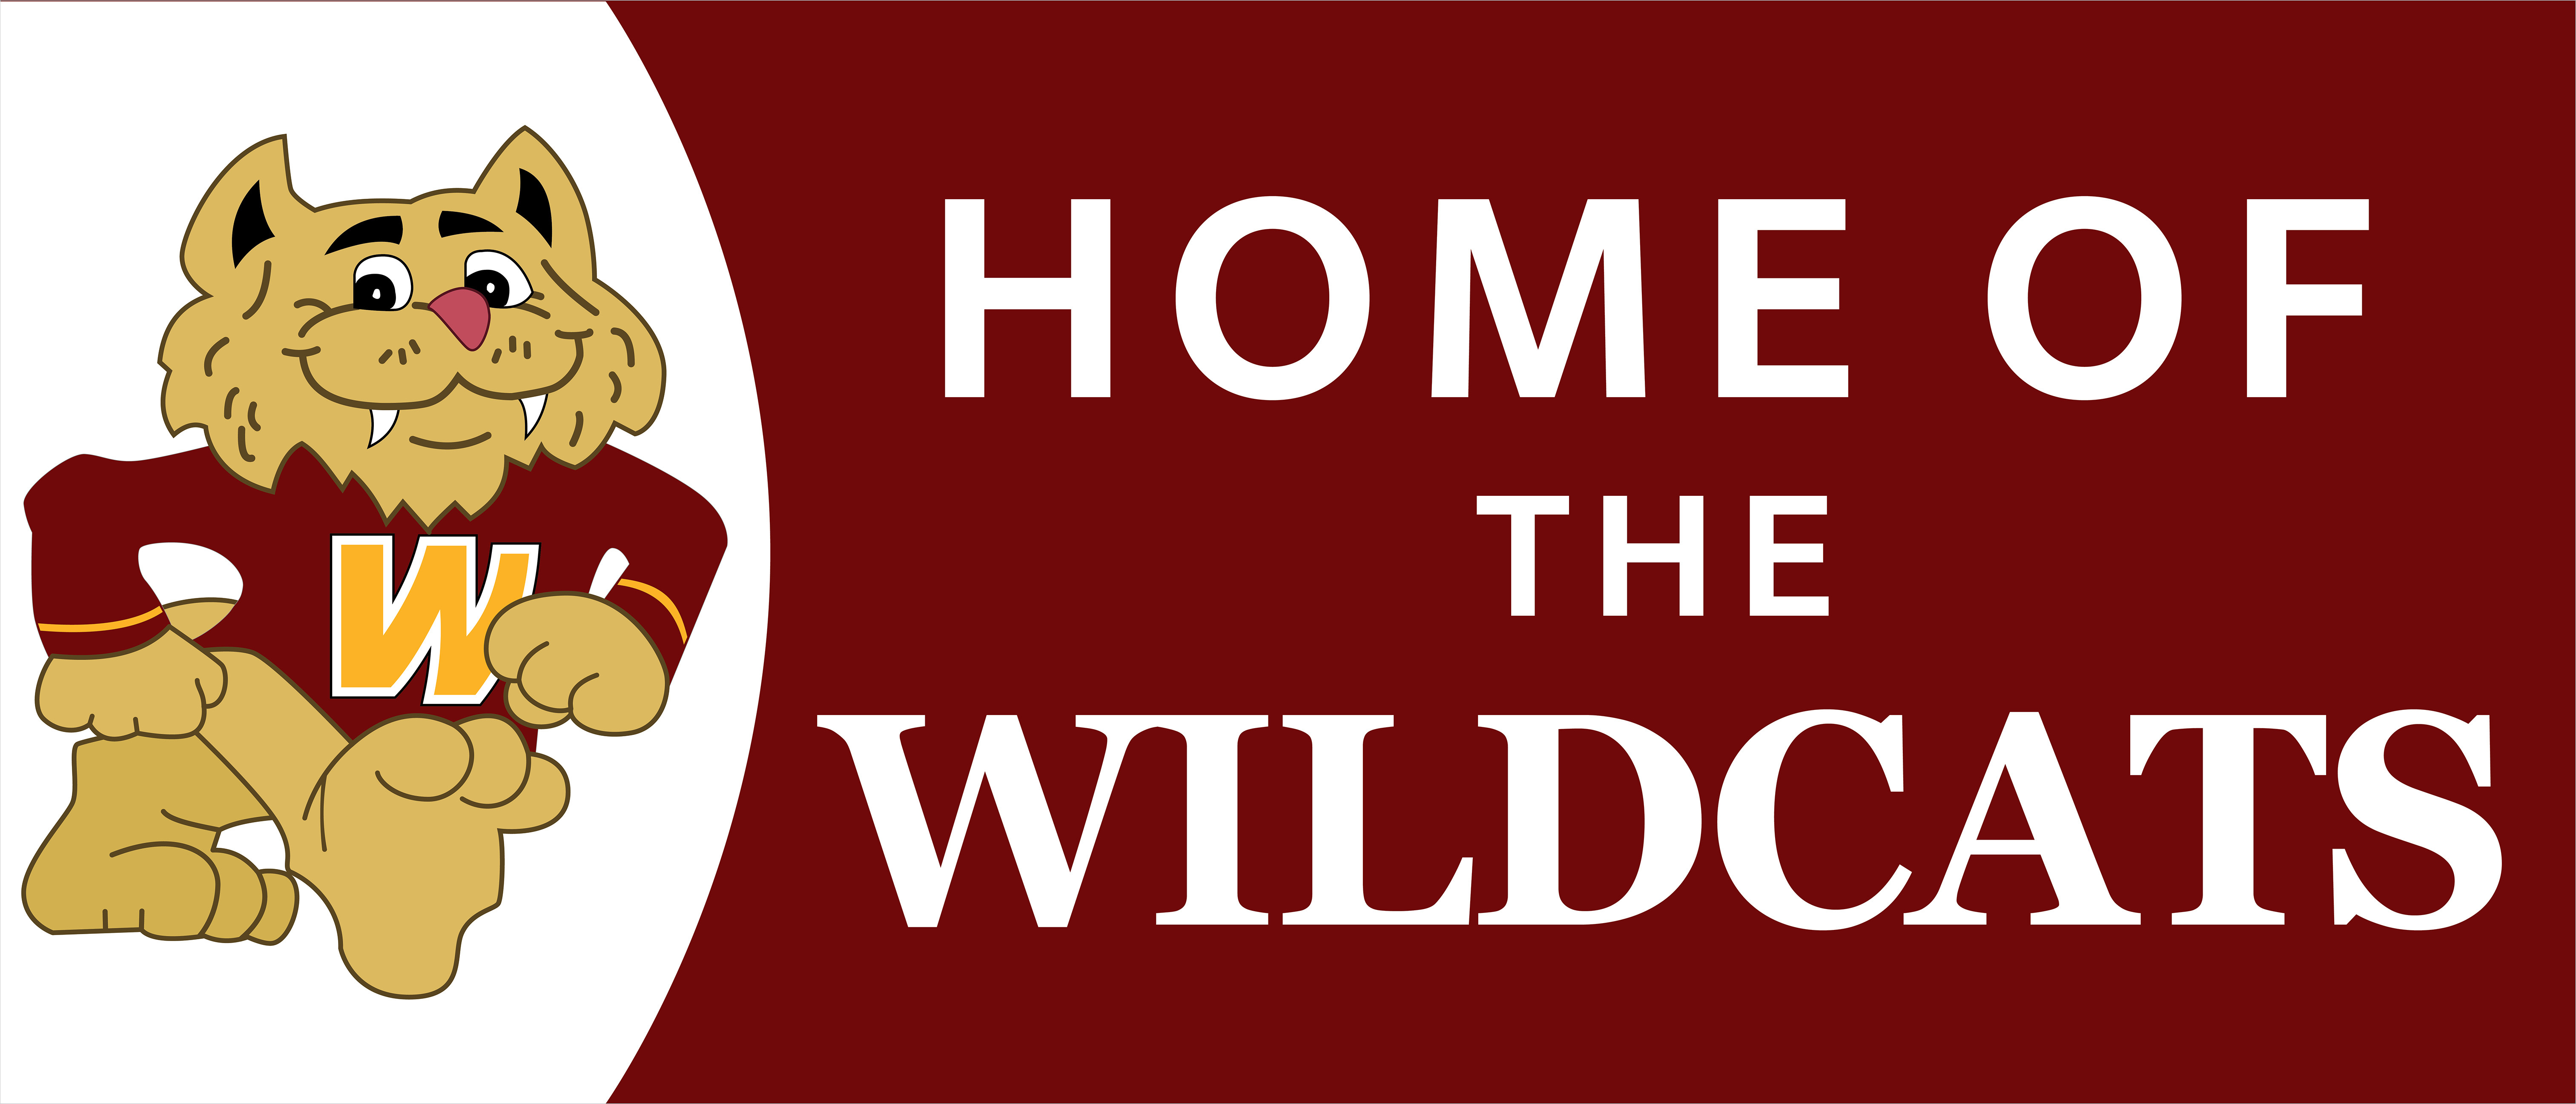 Home of the Wildcats Sign